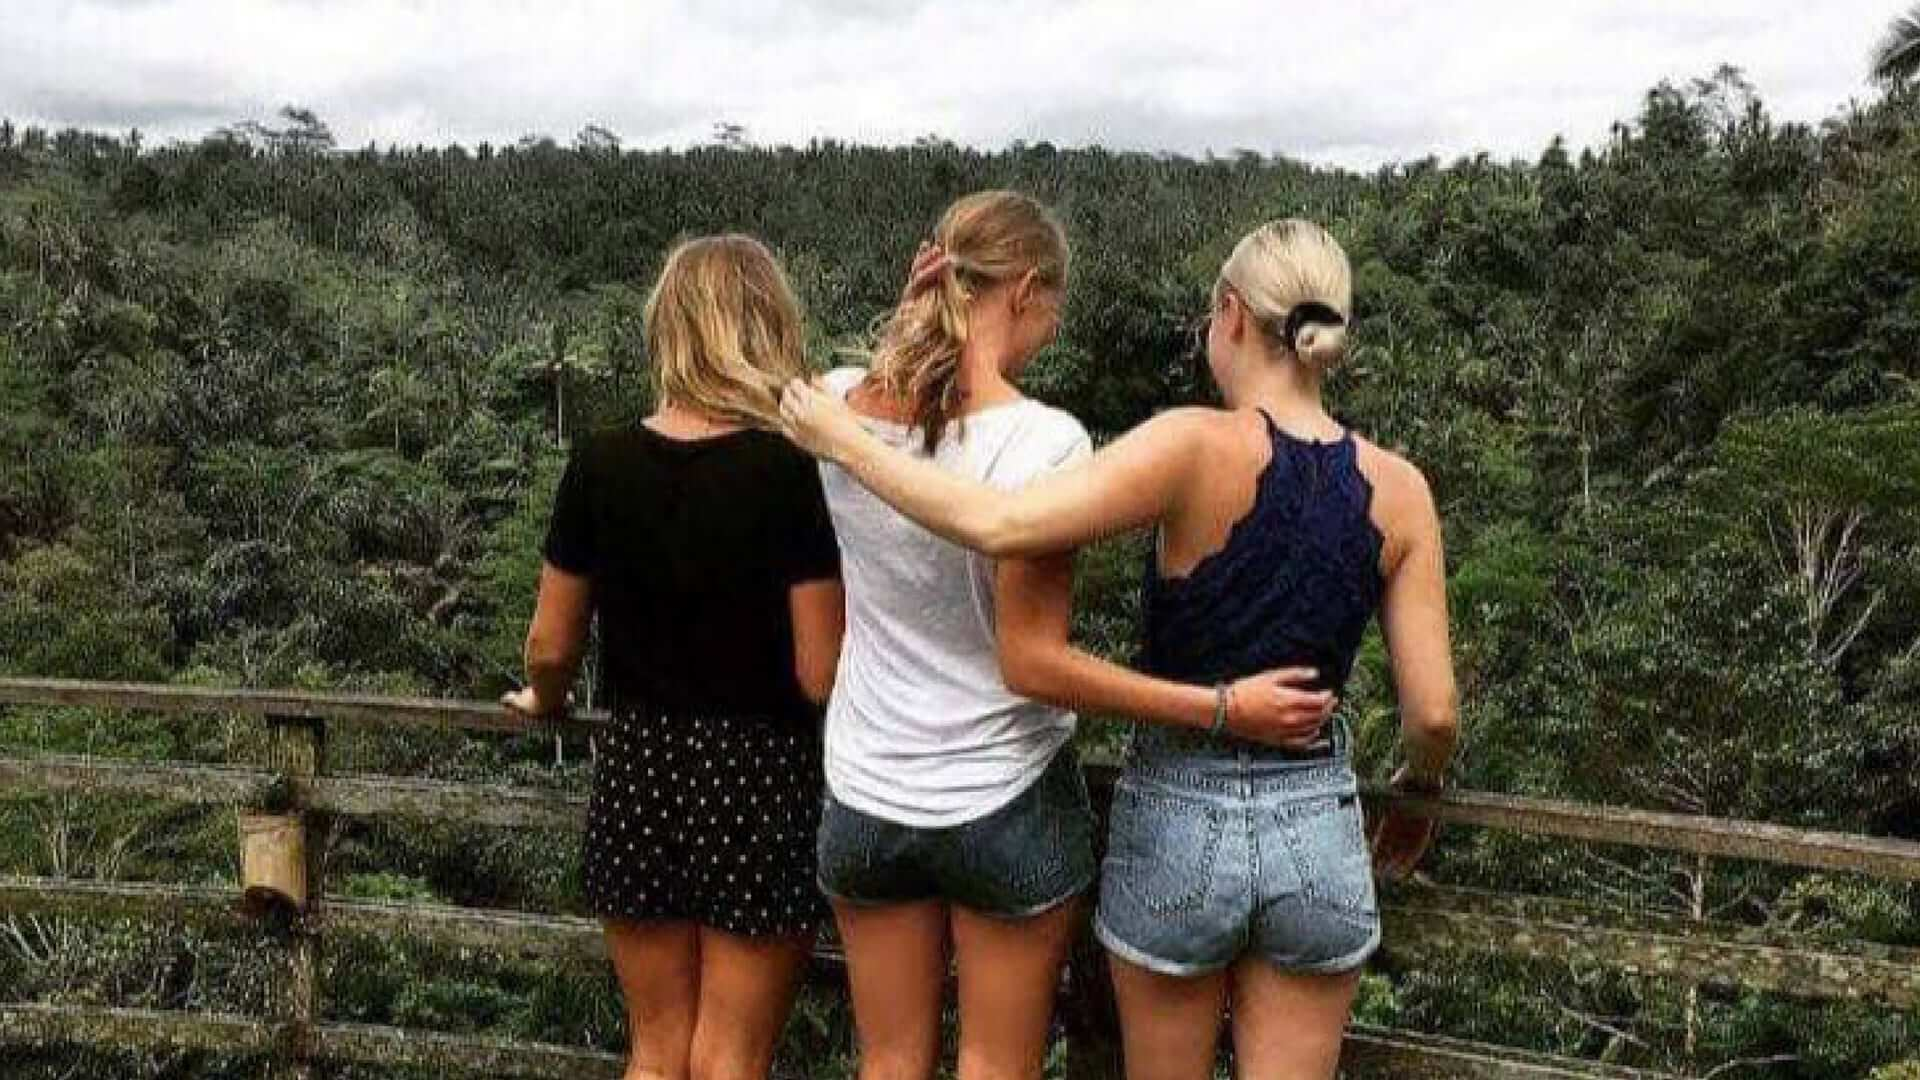 Back view of three blond girls looking over trees in Ubud.